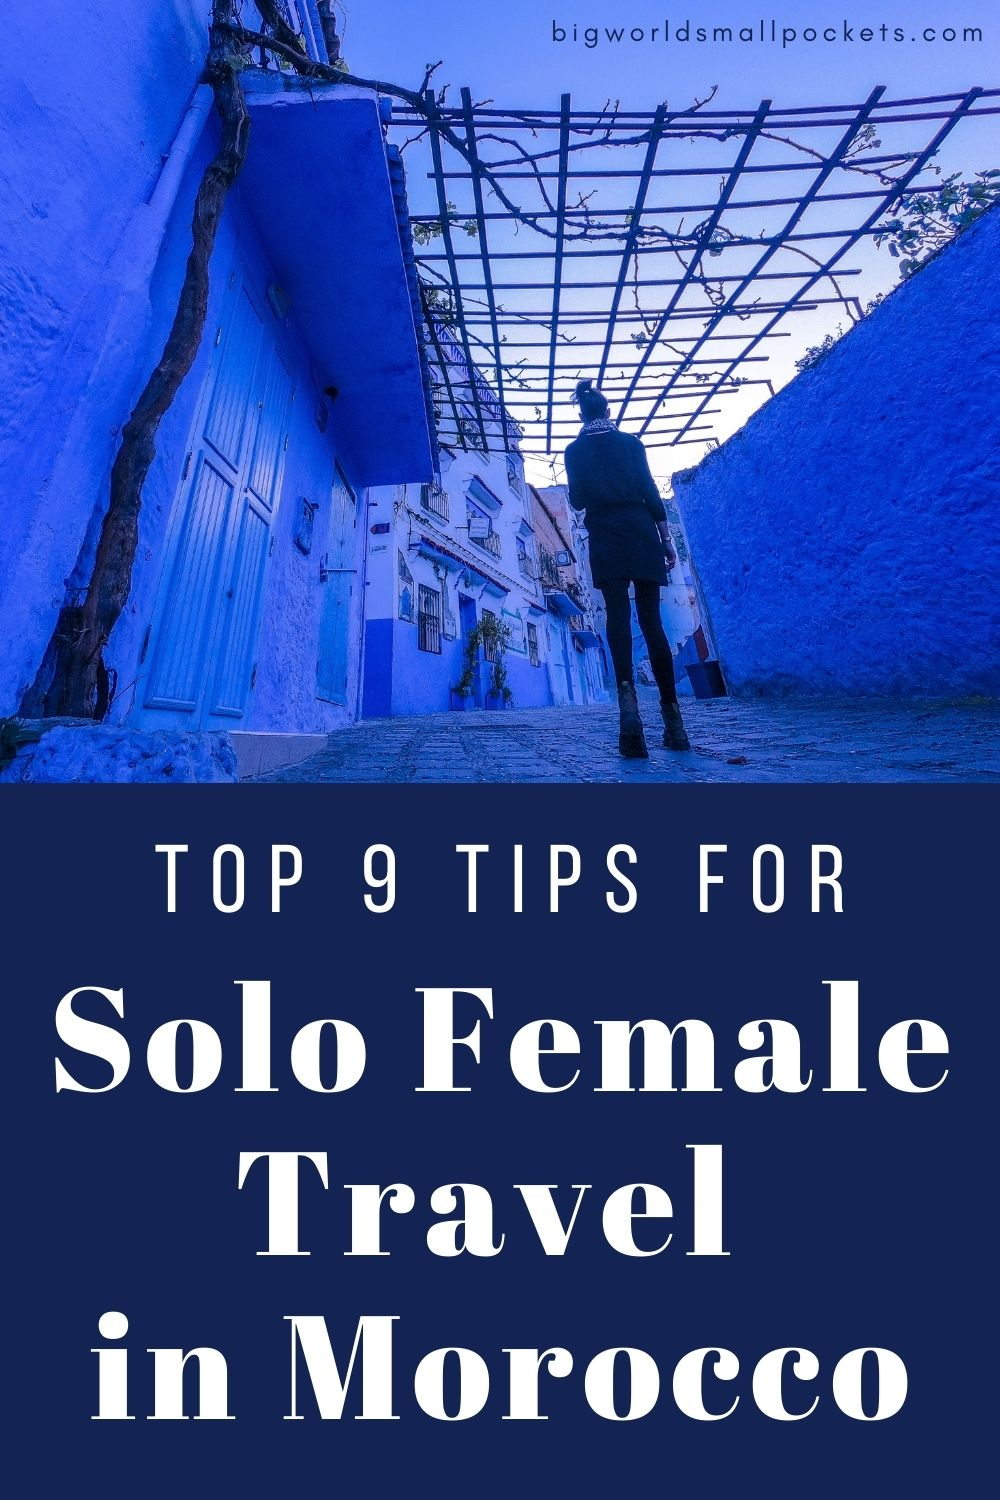 Top 9 Tips for Female Travel in Morocco